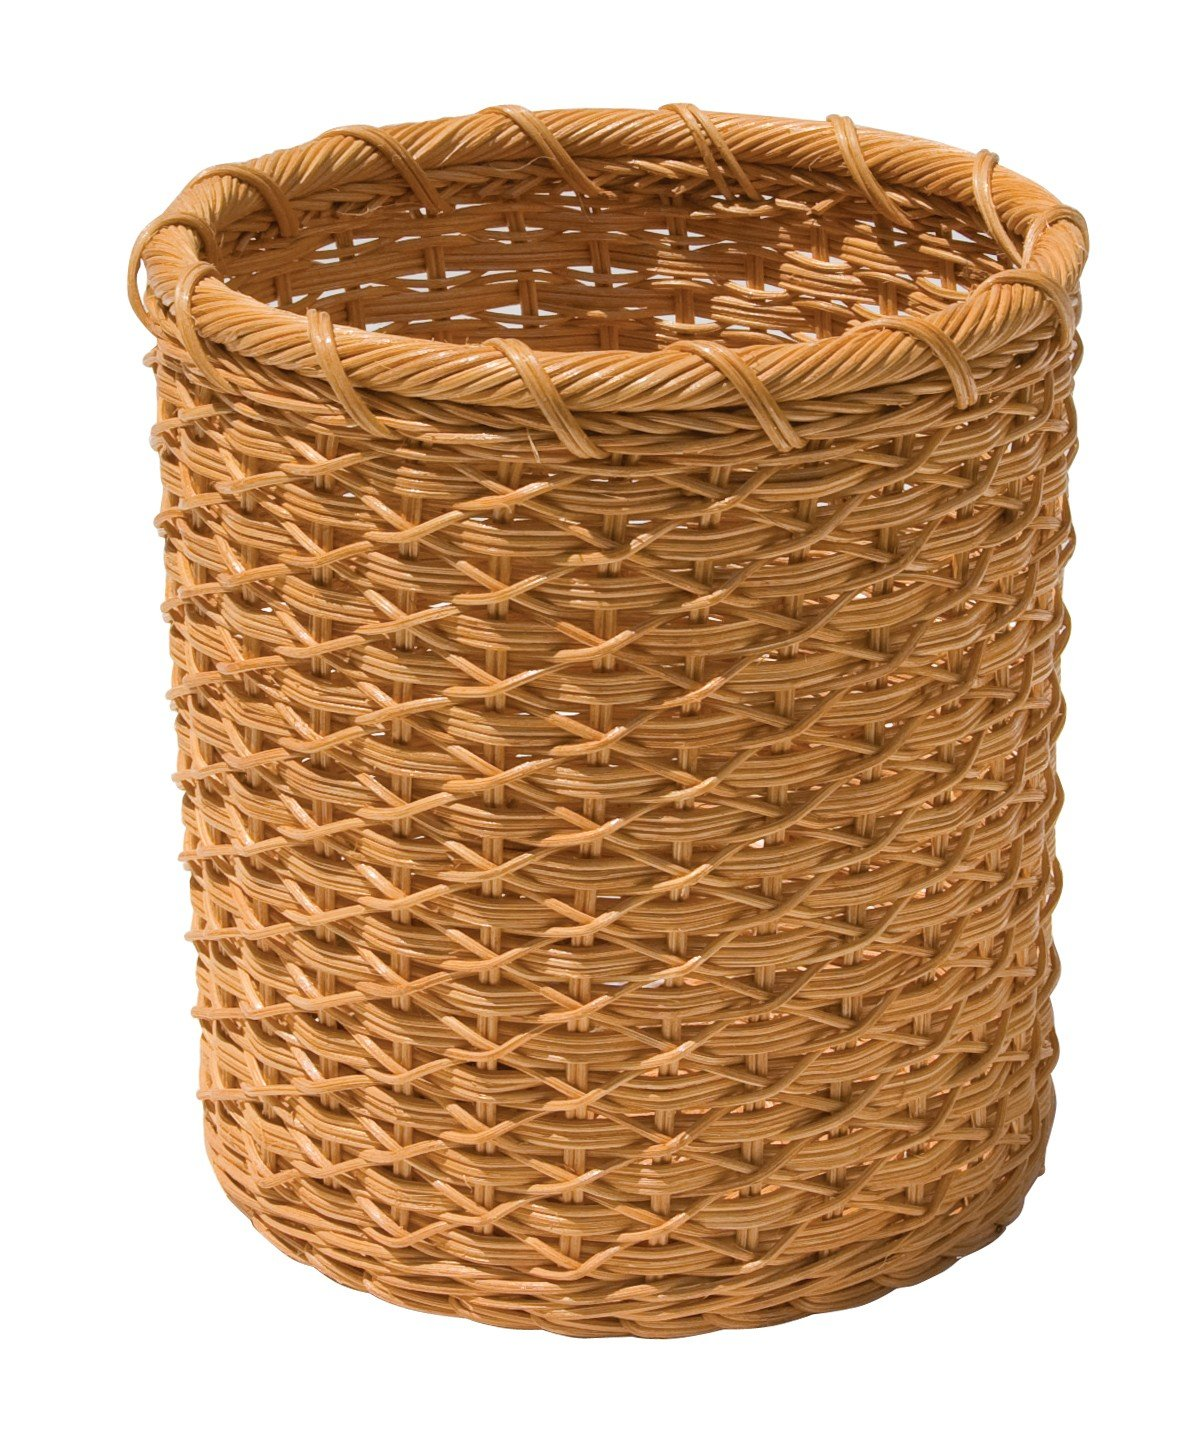 Amazon:anize It All Natural Wicker Wastebasket, Cream: Home &  Kitchen